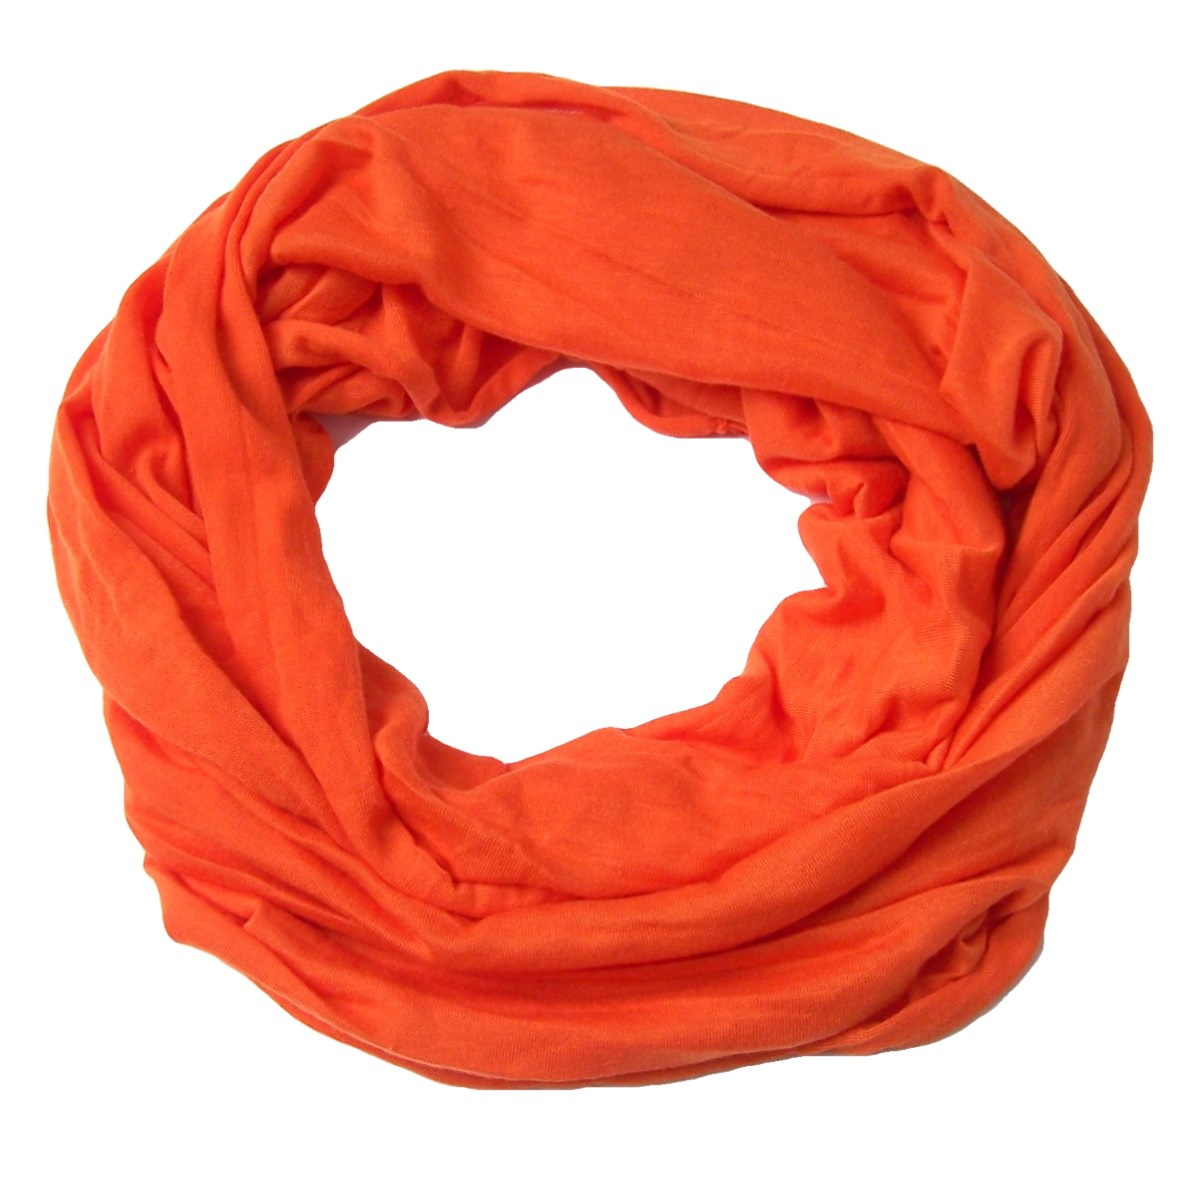 T7034* Loop Schal Tuch orange Rundschal Damen NEU